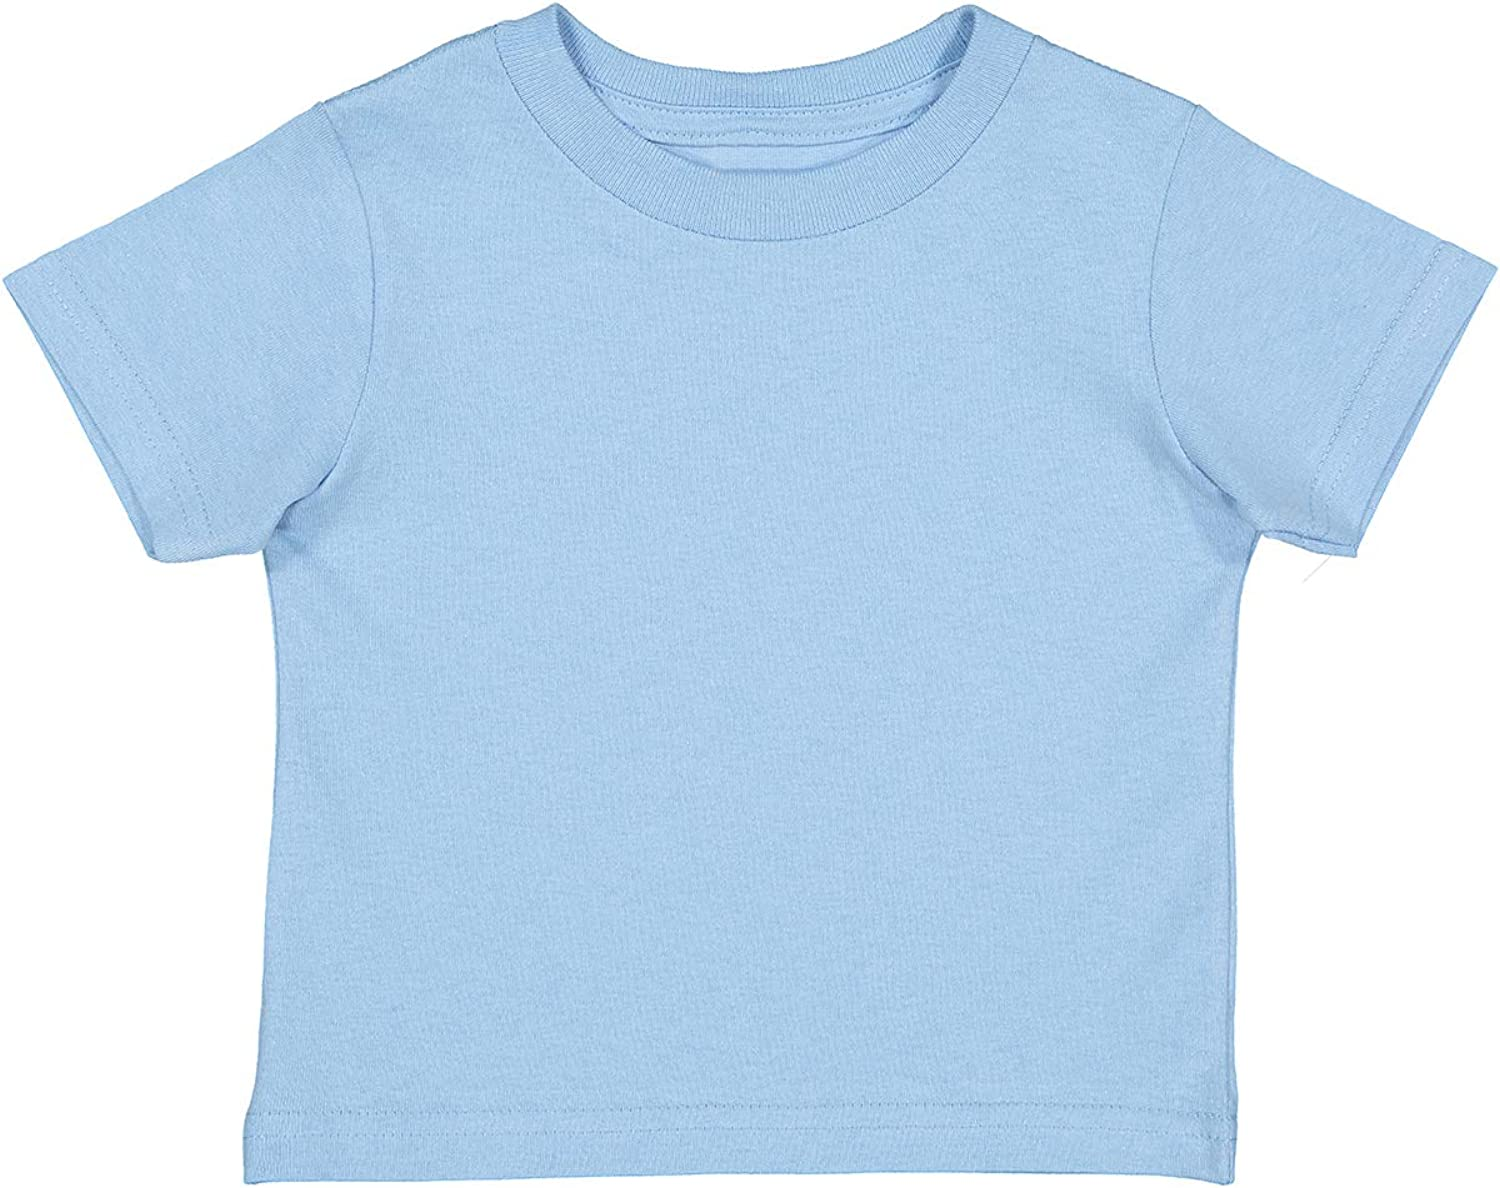 Marky G Apparel Boys' Printed Sicily Graphic Cotton Jersey T-Shirt